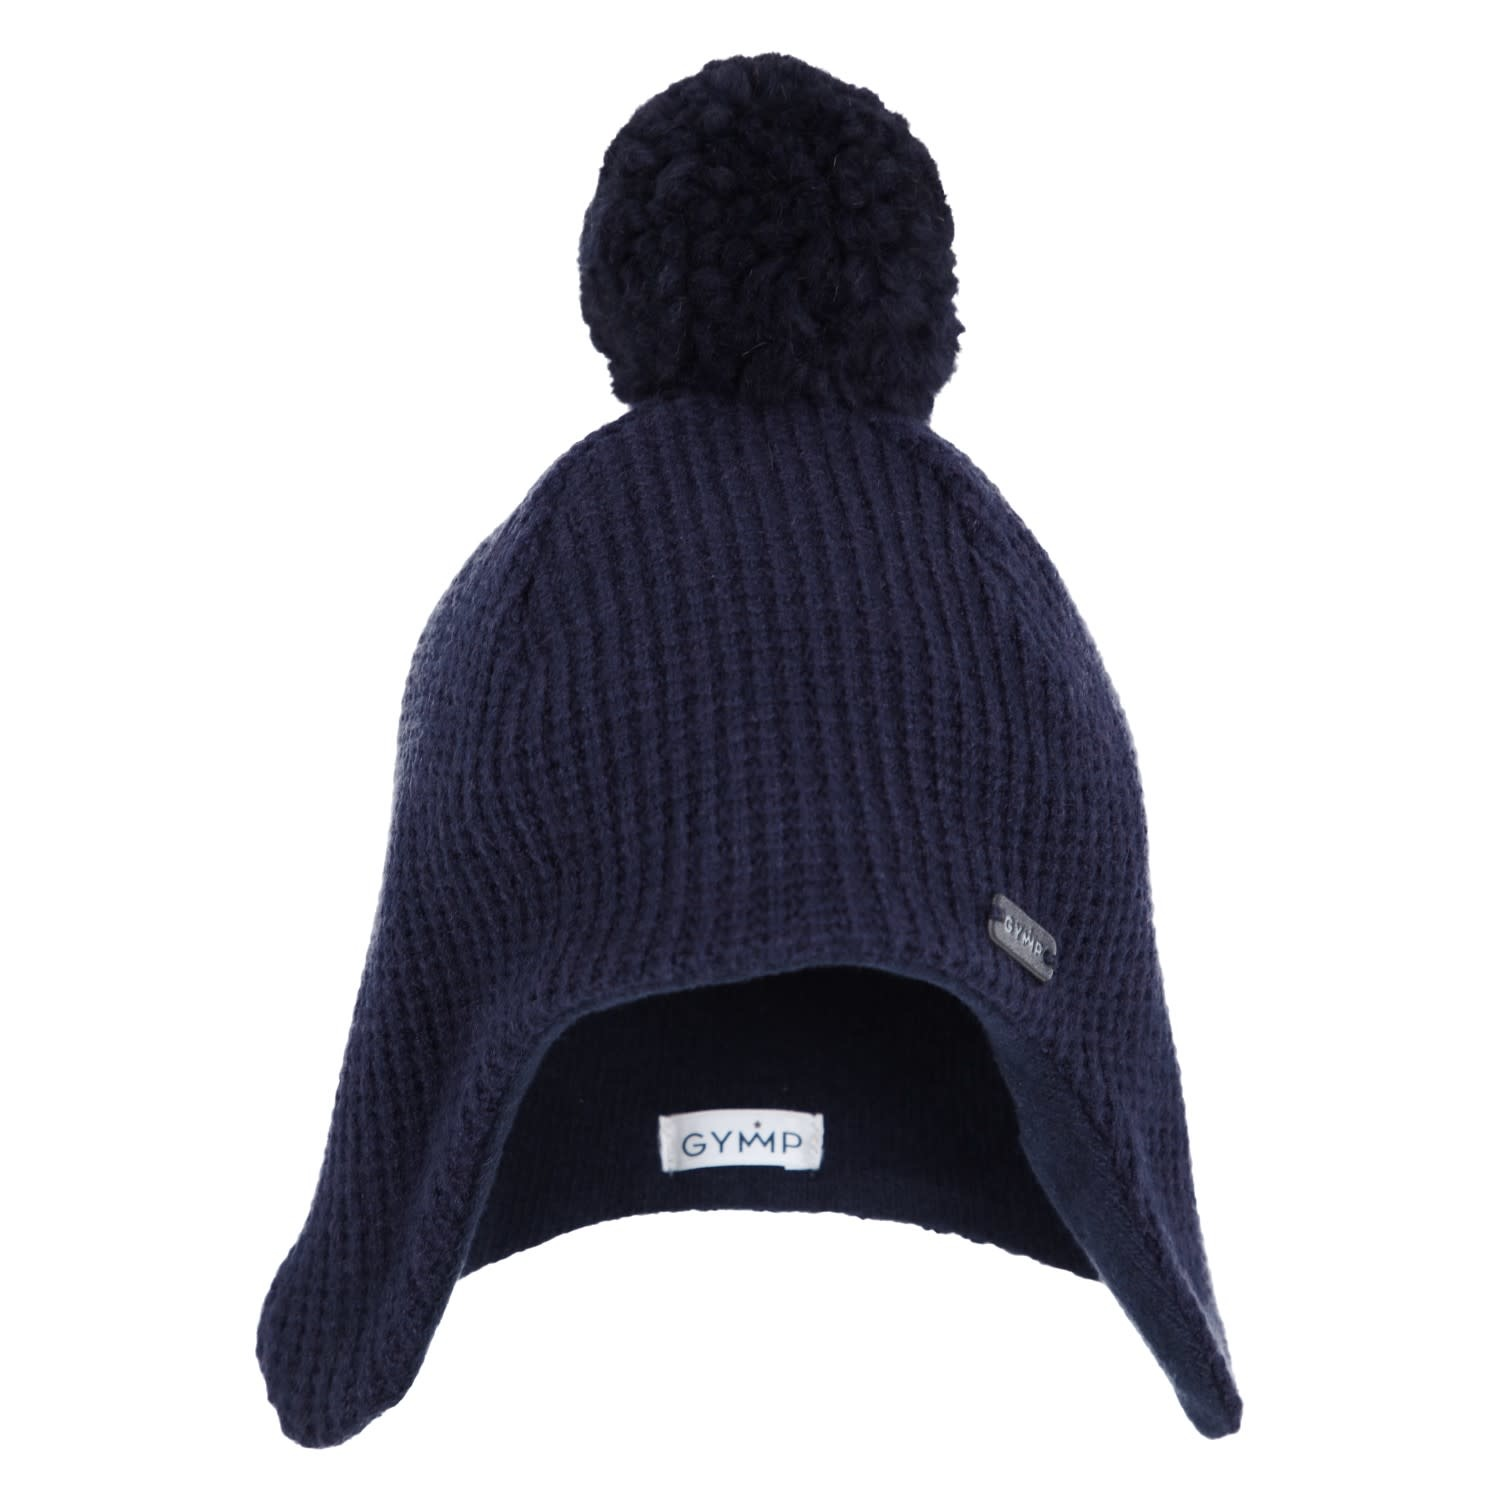 Gymp Knitted Beanie Navy